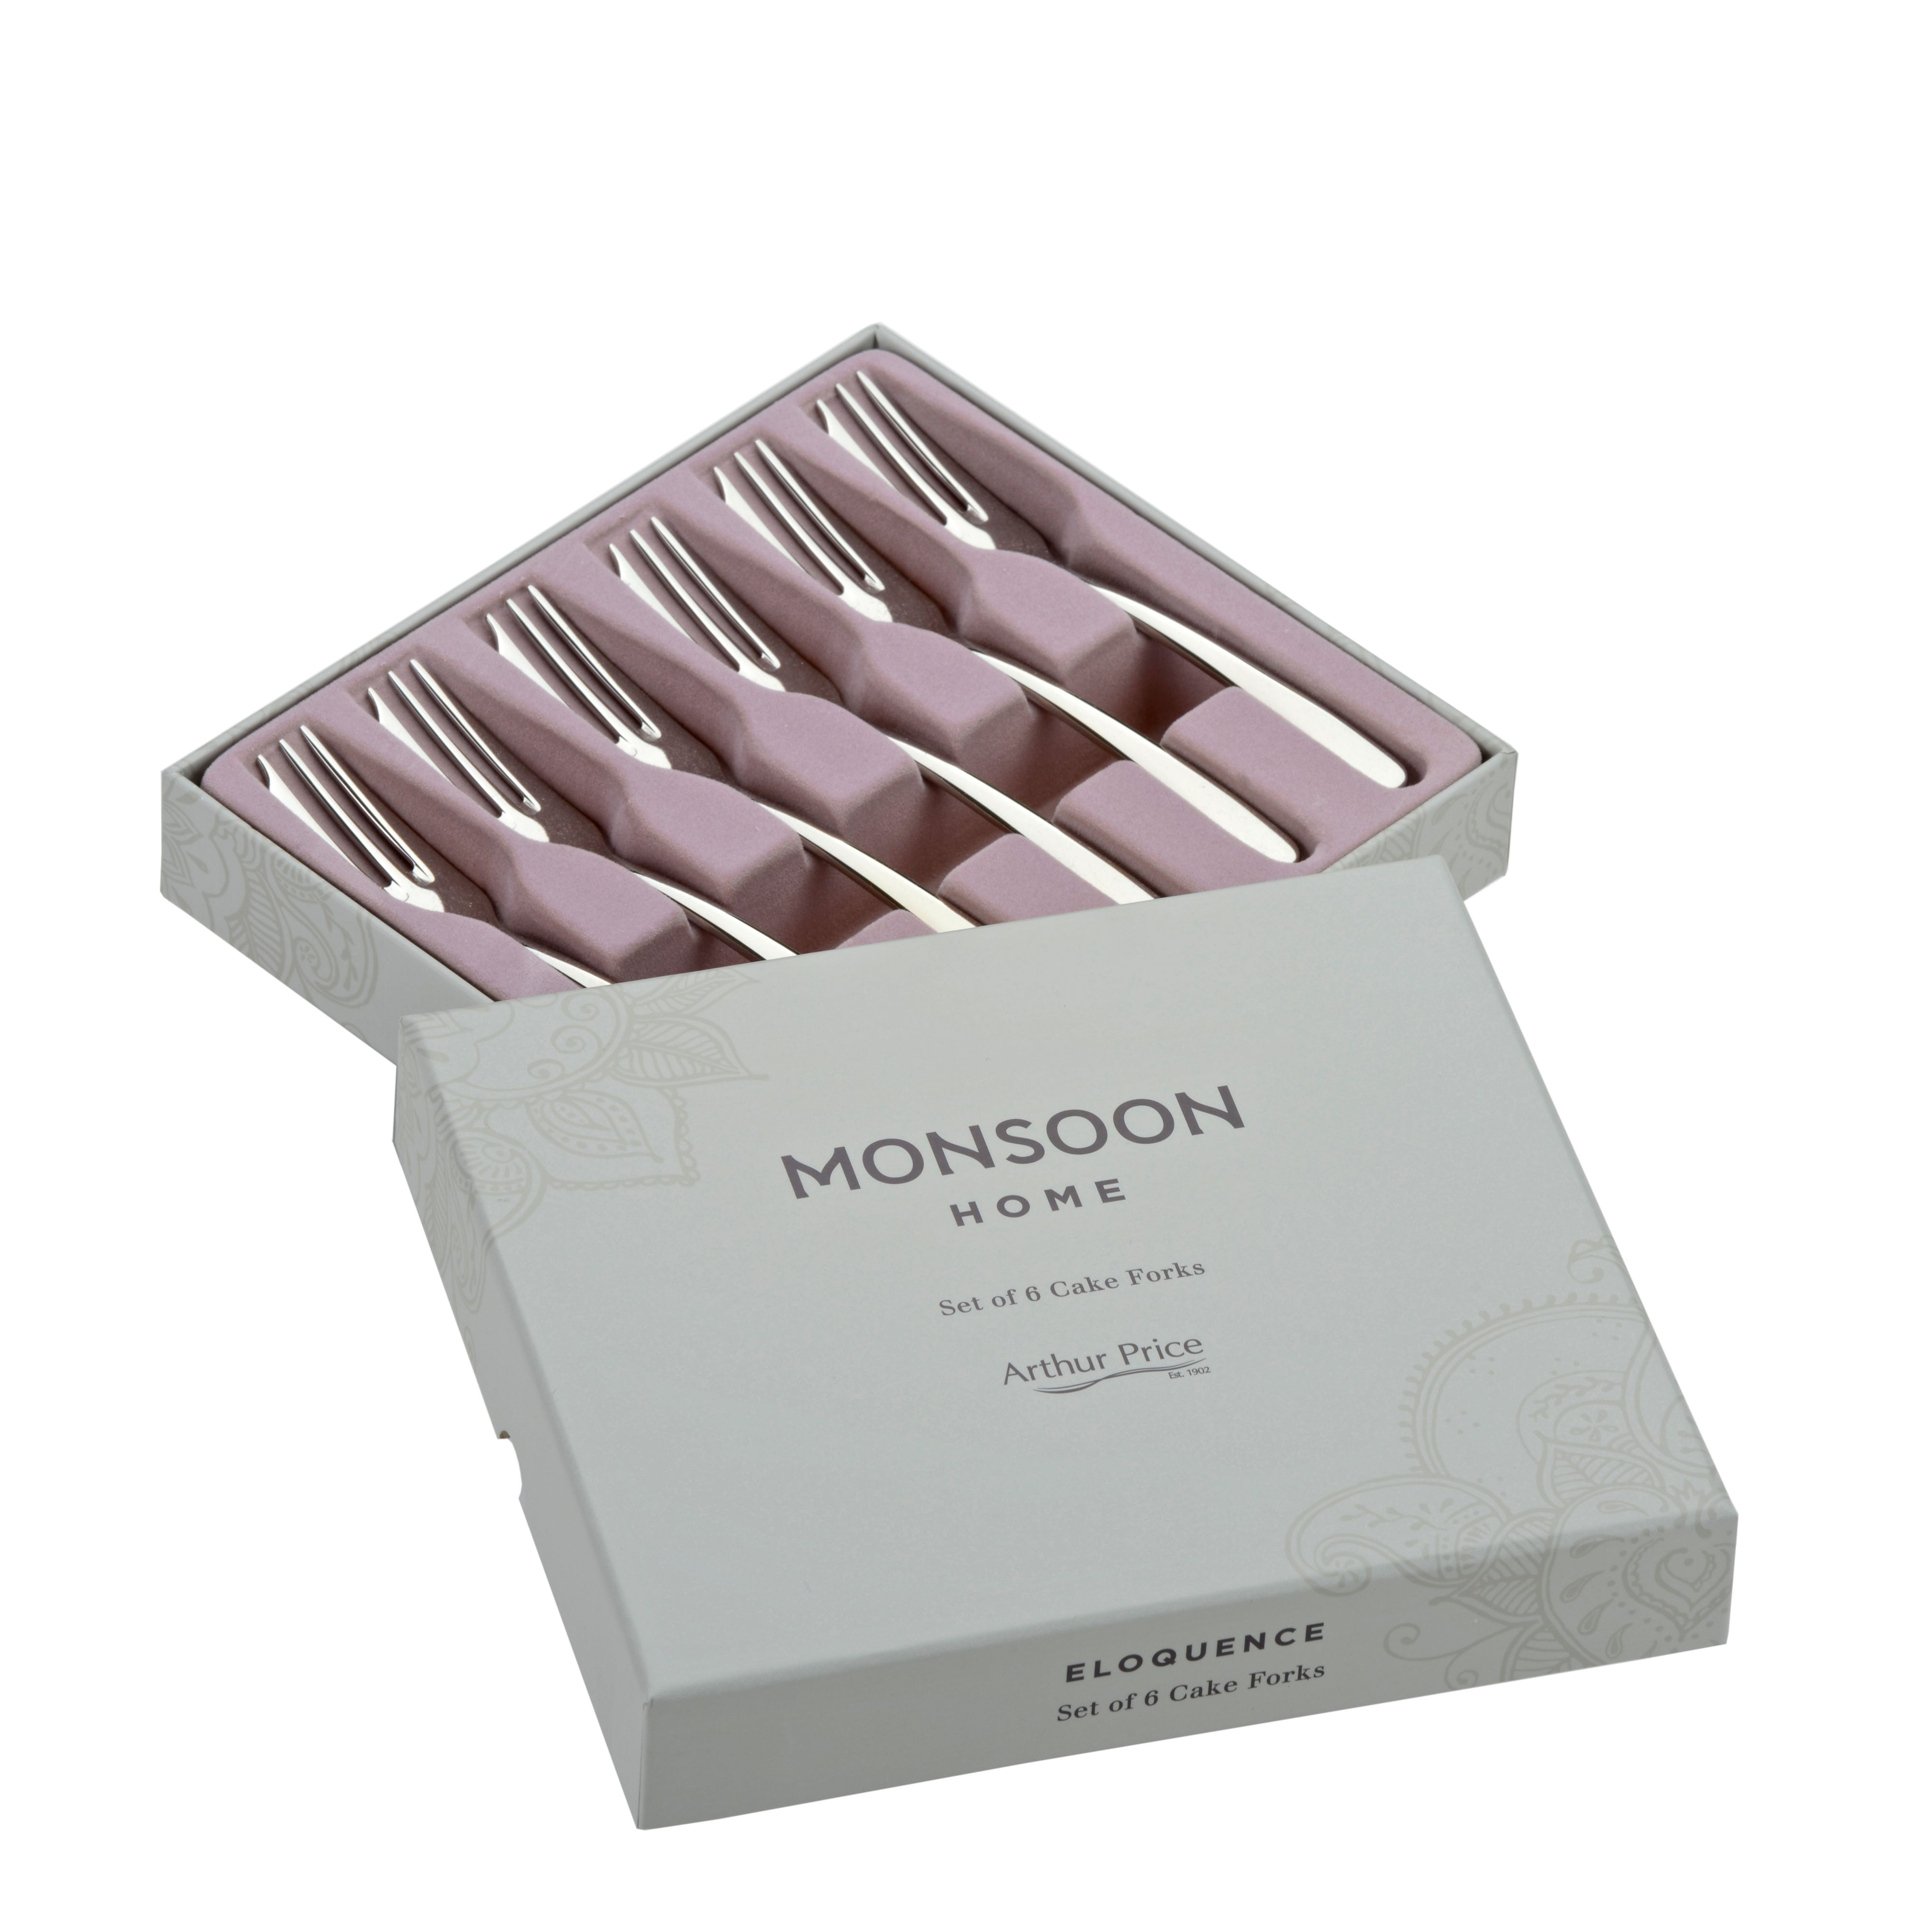 Monsoon box of 6 stainless steel pastry forks